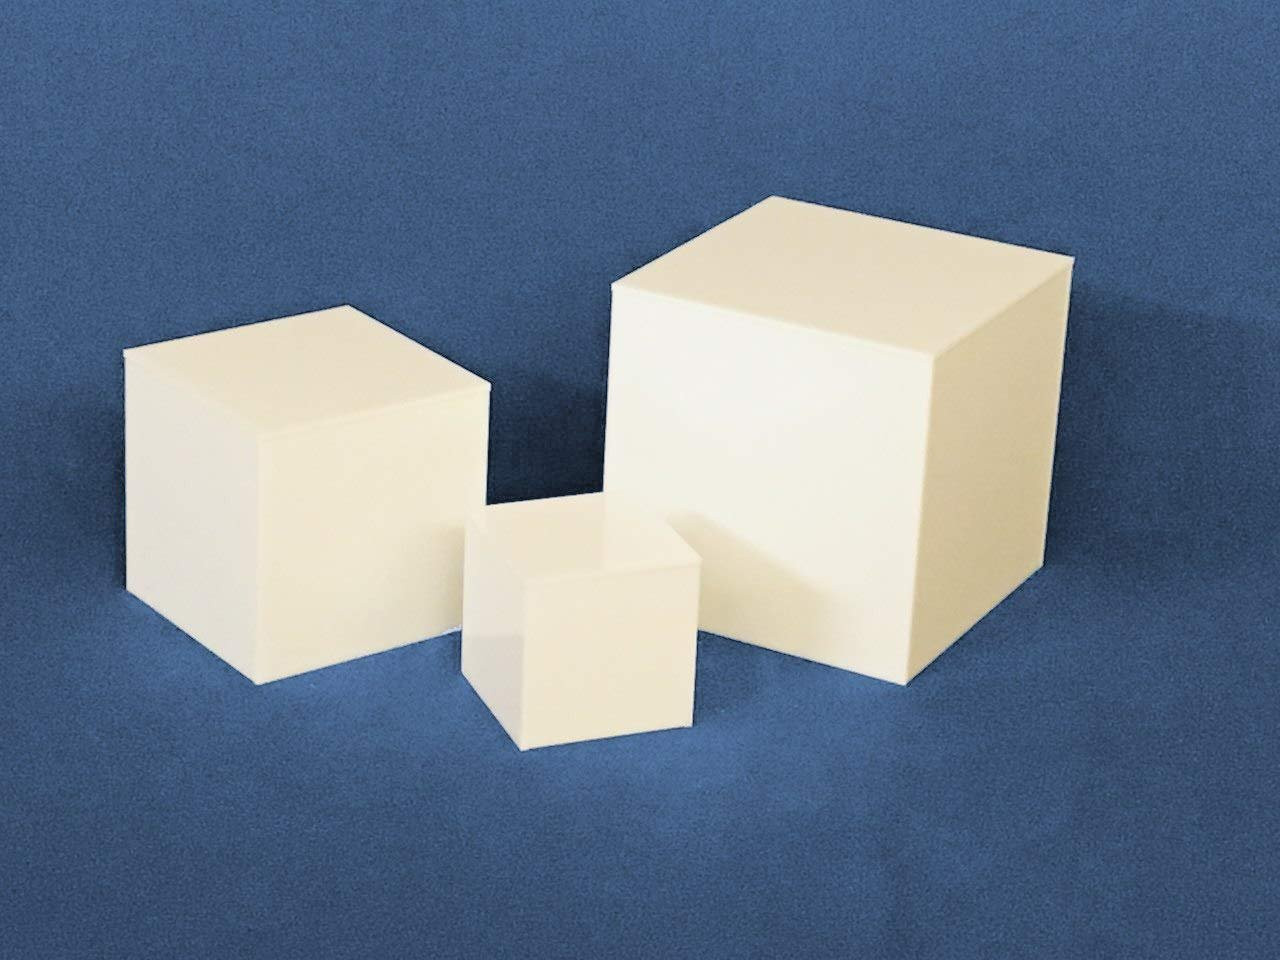 Clear Stands Economy Cubes - White Square Cube 6 inch, case of 8